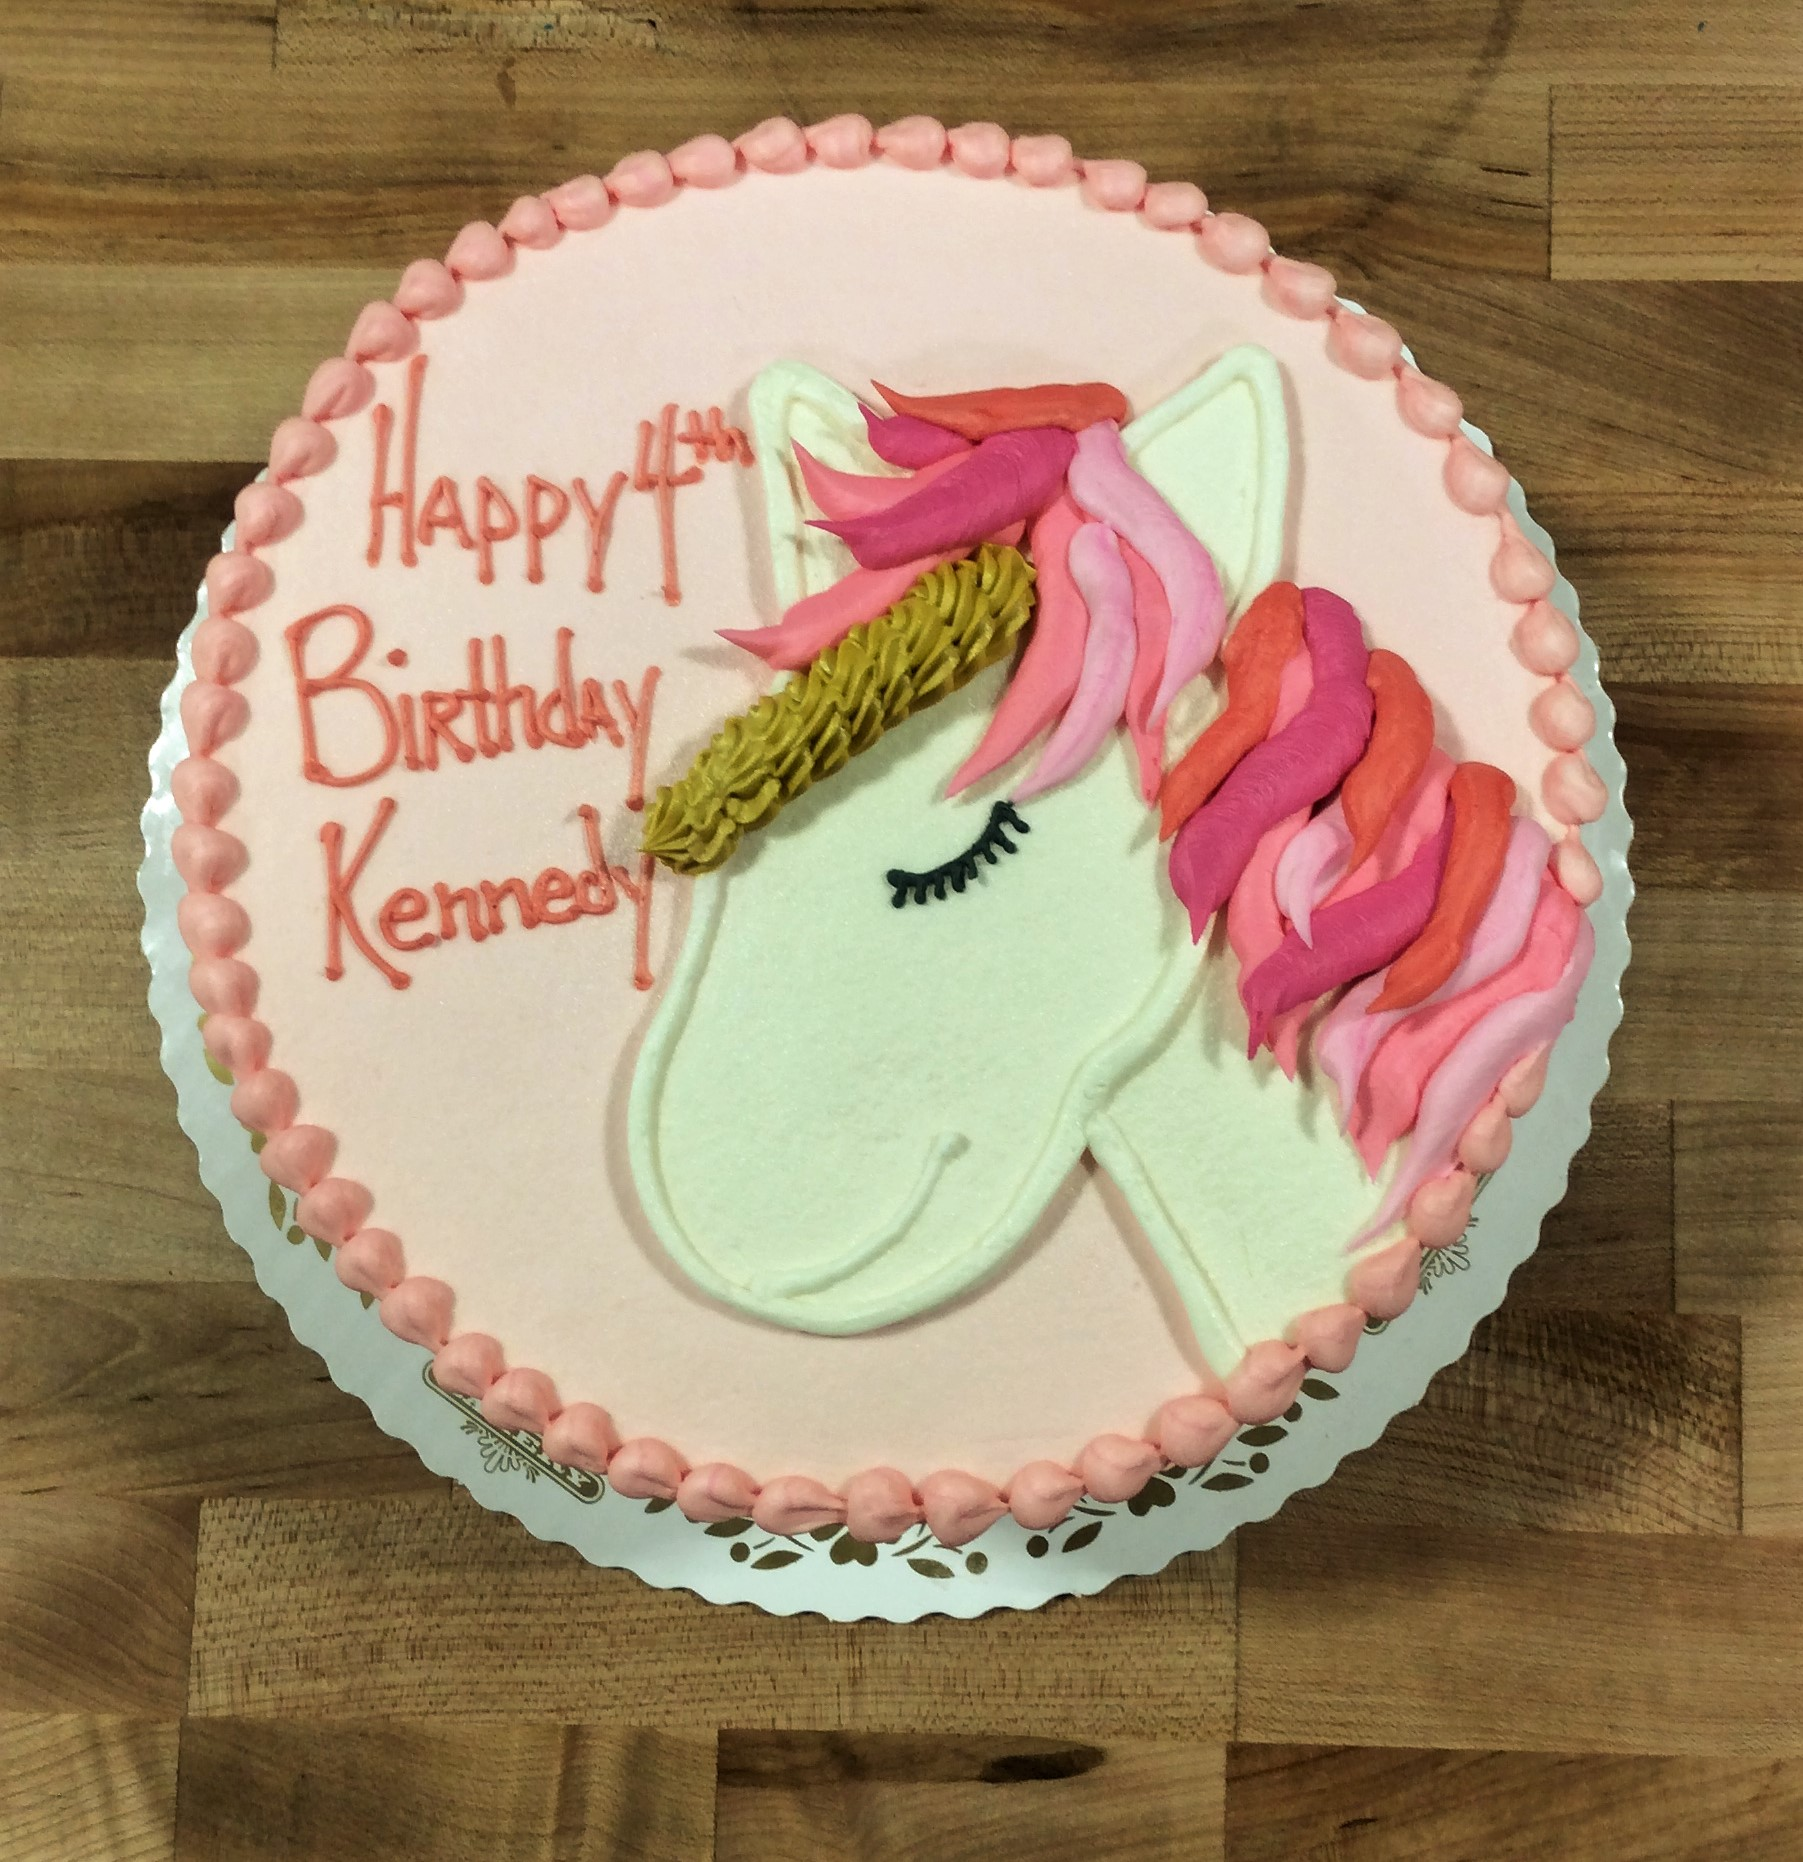 Pink Round Cake with Piped Unicorn